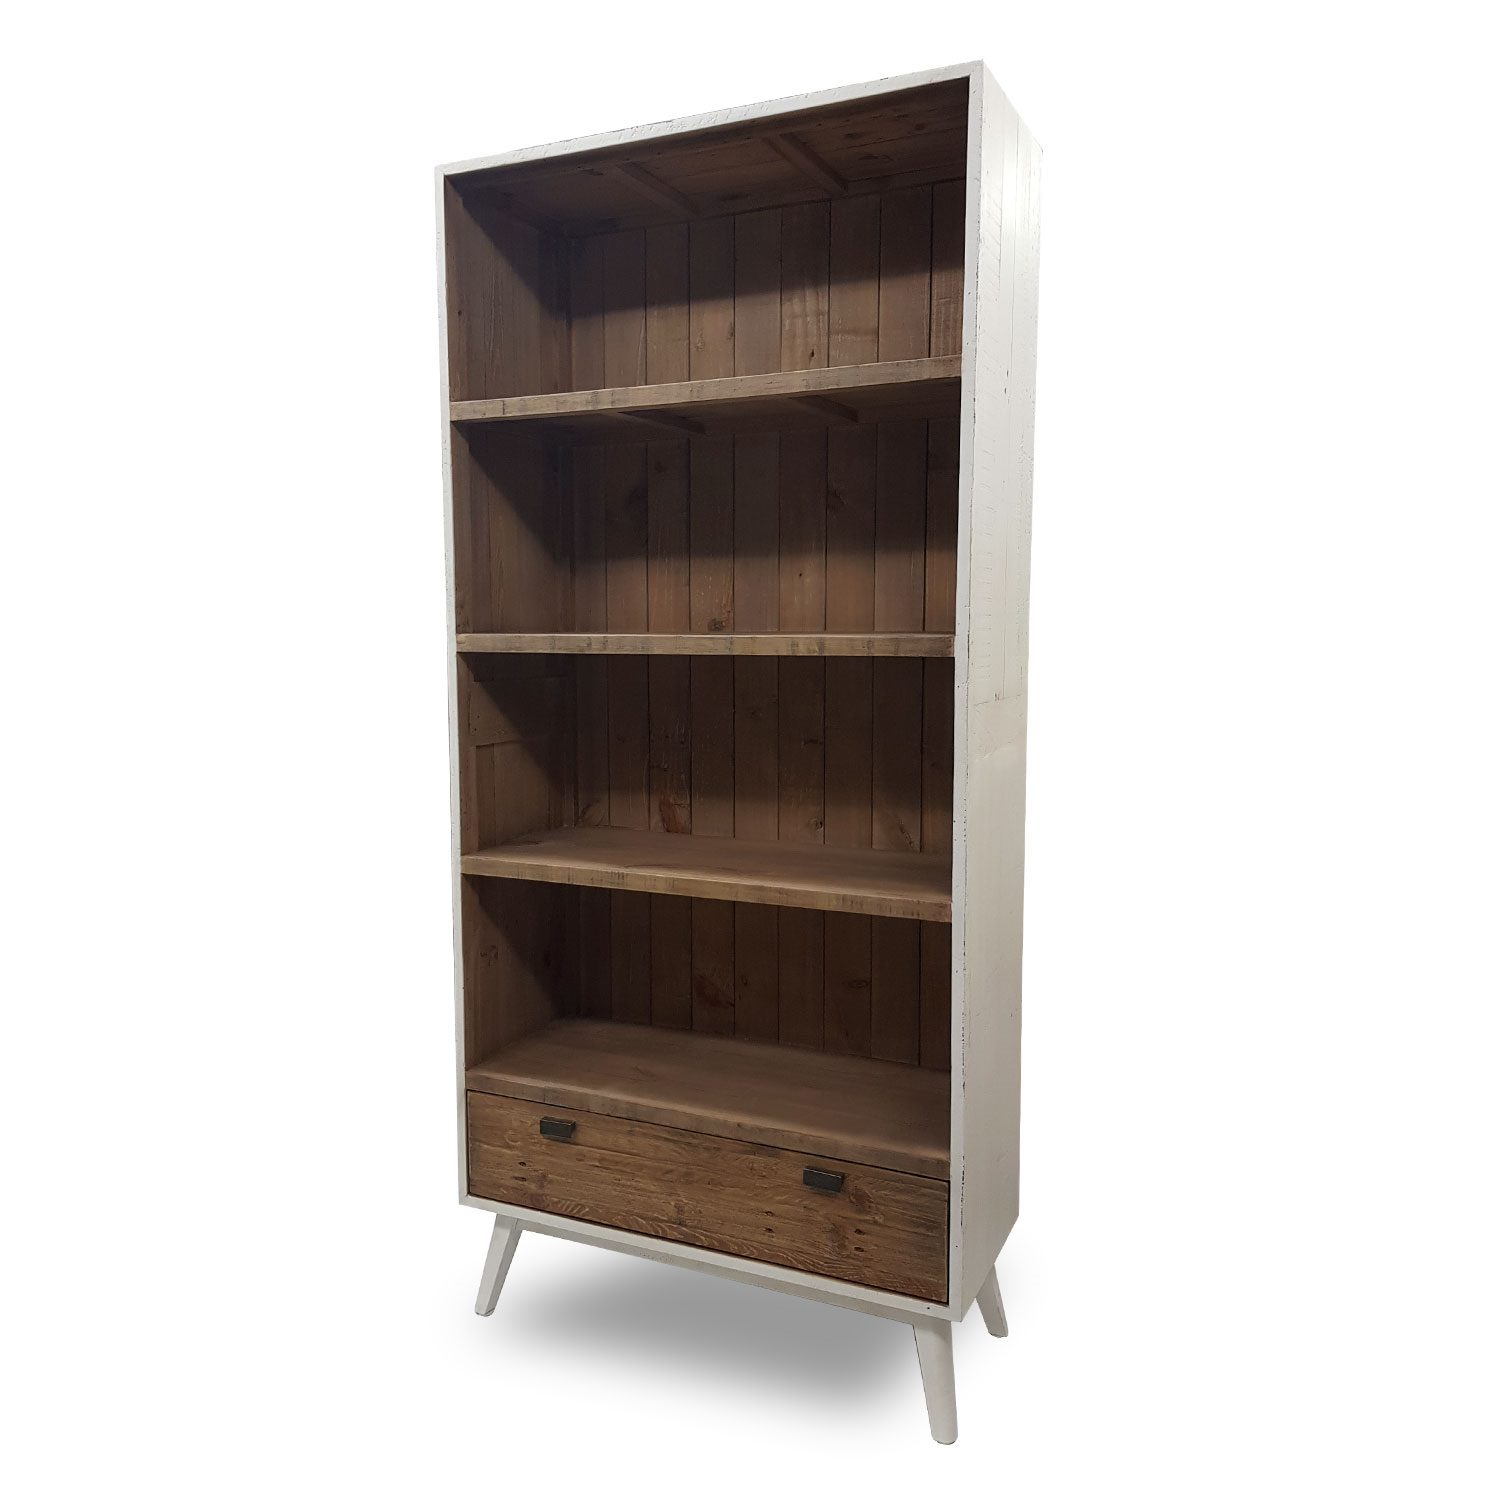 Rustic Wooden Bookcase Brooklyn Collection